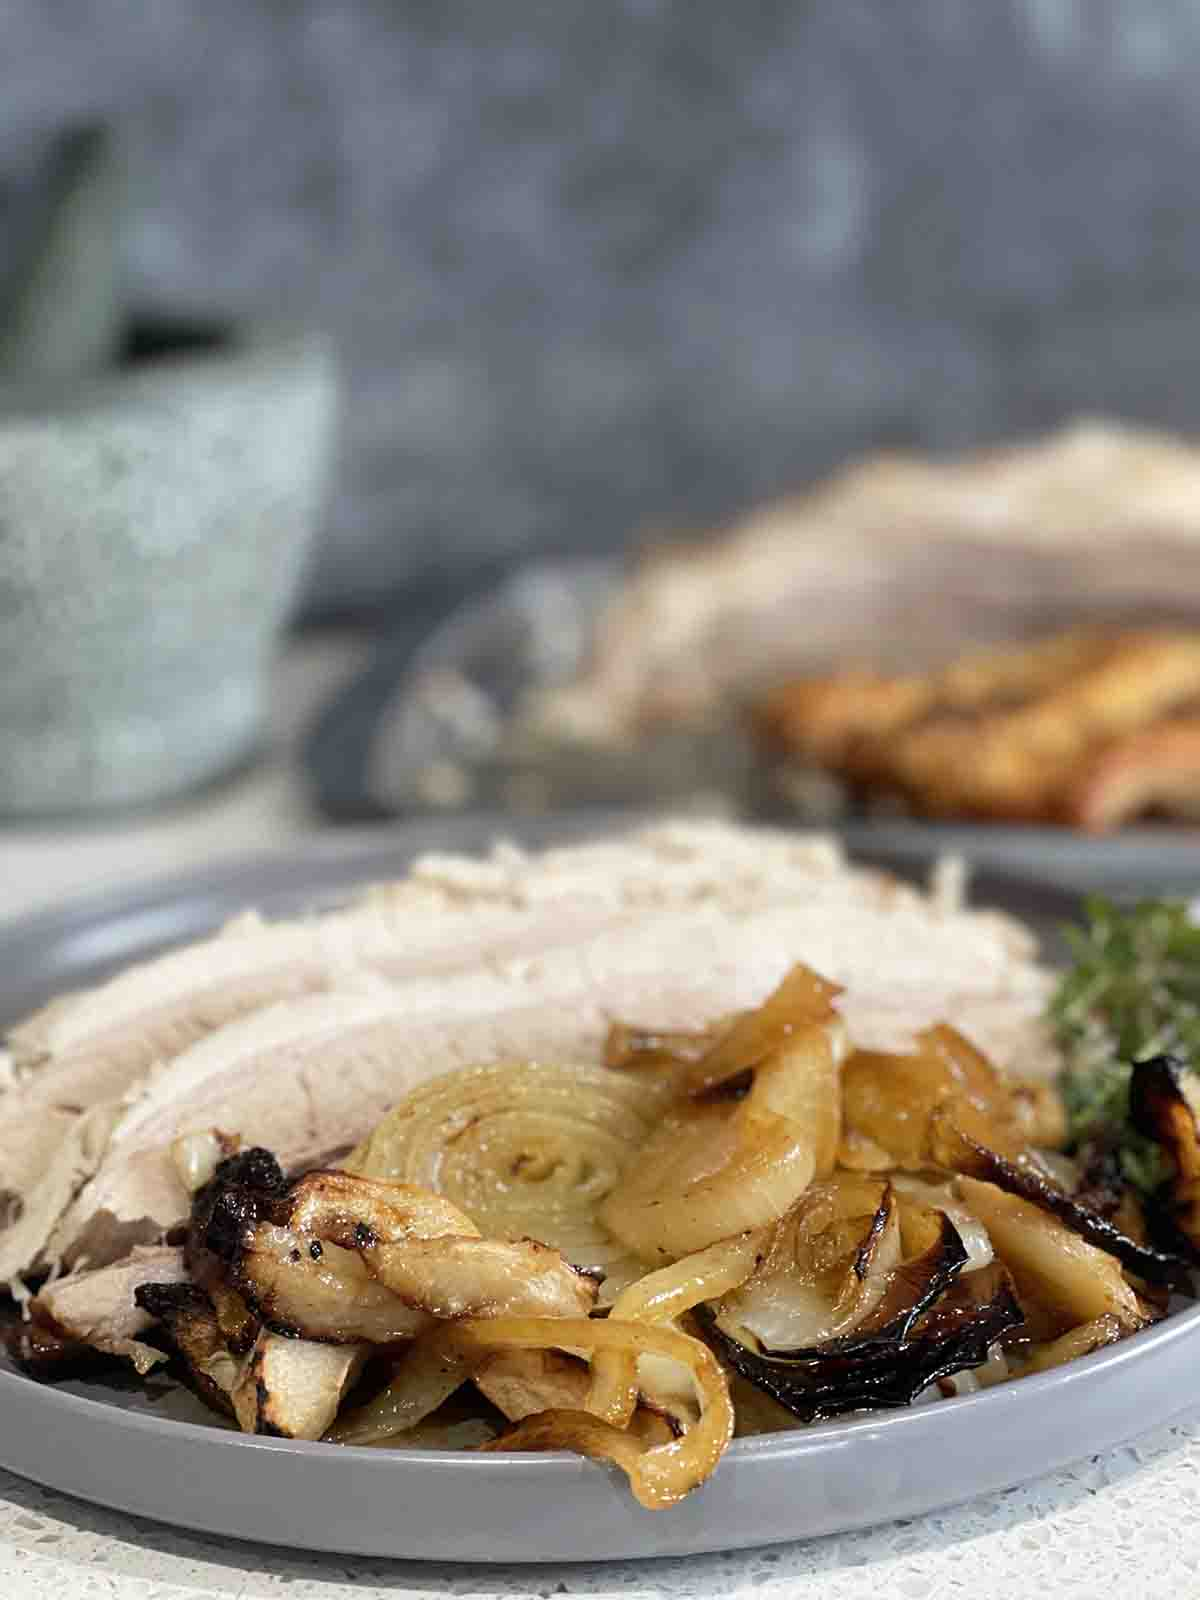 roast pork on a plate with apples and onions.